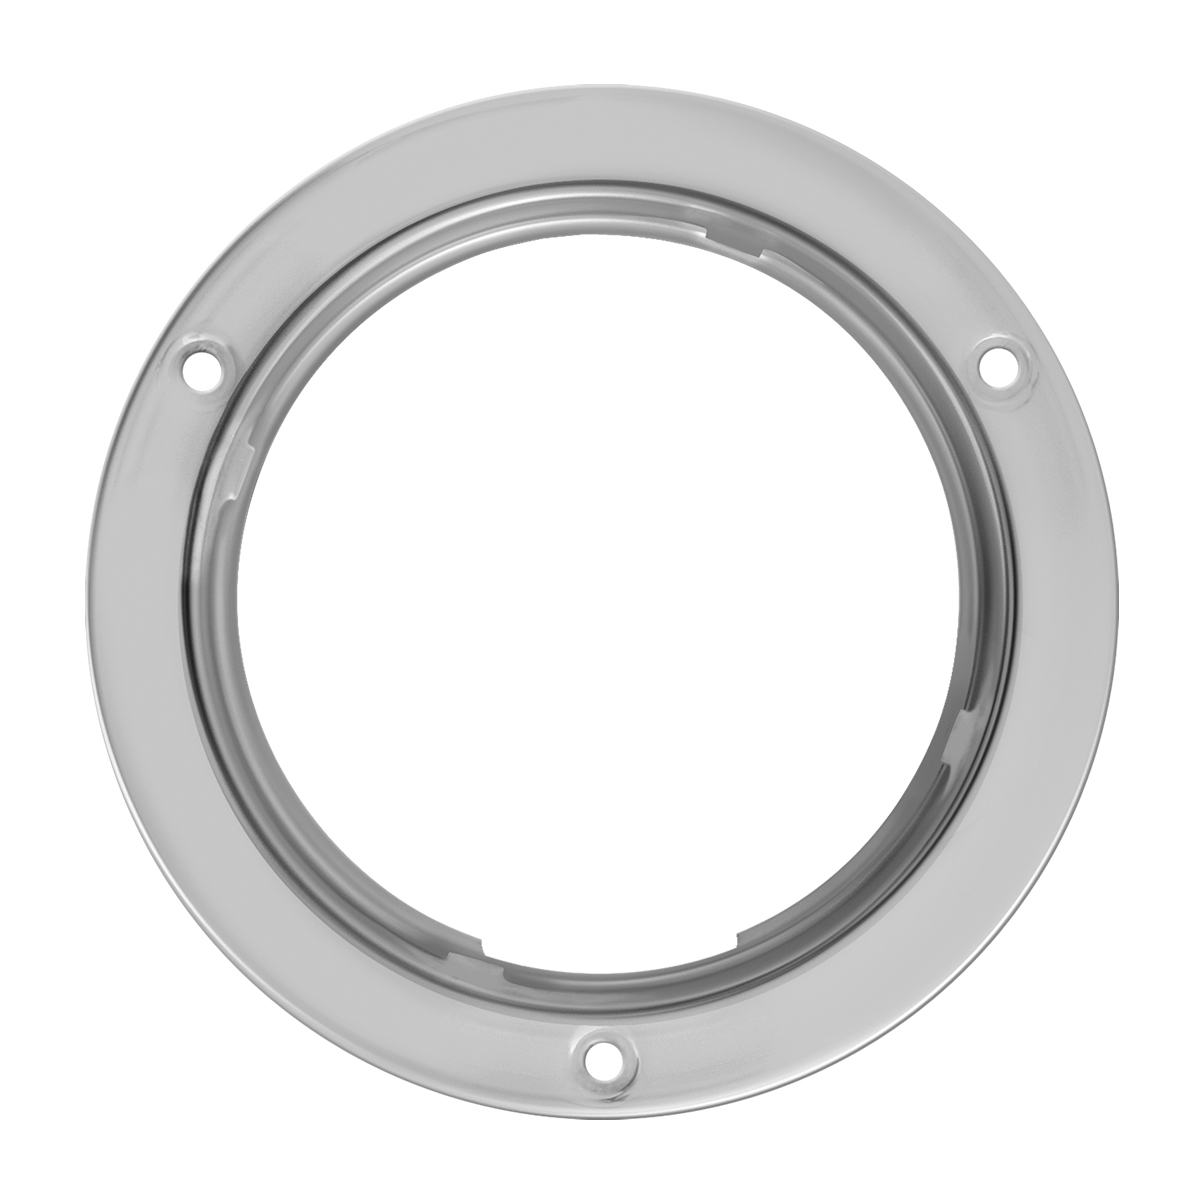 Stainless Steel Flange Mount Bezel For 4 Quot Round Light